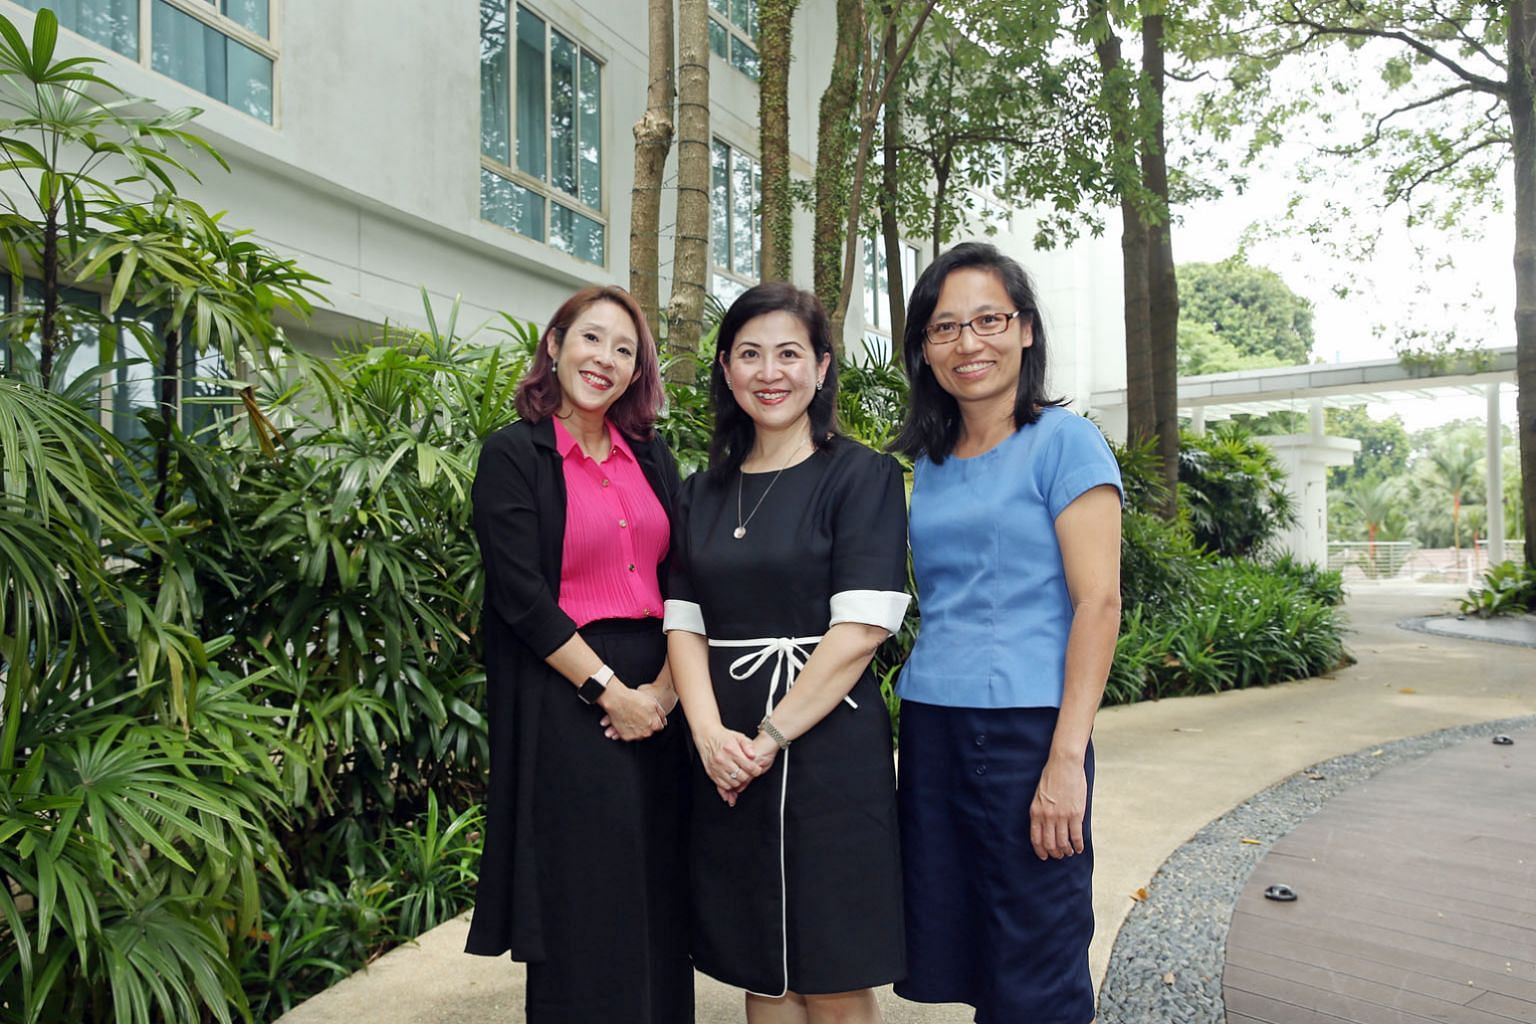 Head of Duke-NUS Medical School's Centre for Clinician-Scientist Development Koh Woon Puay (centre), who founded a year-long professional leadership training programme that aims to empower women clinician-scientists and scientists to succeed in their